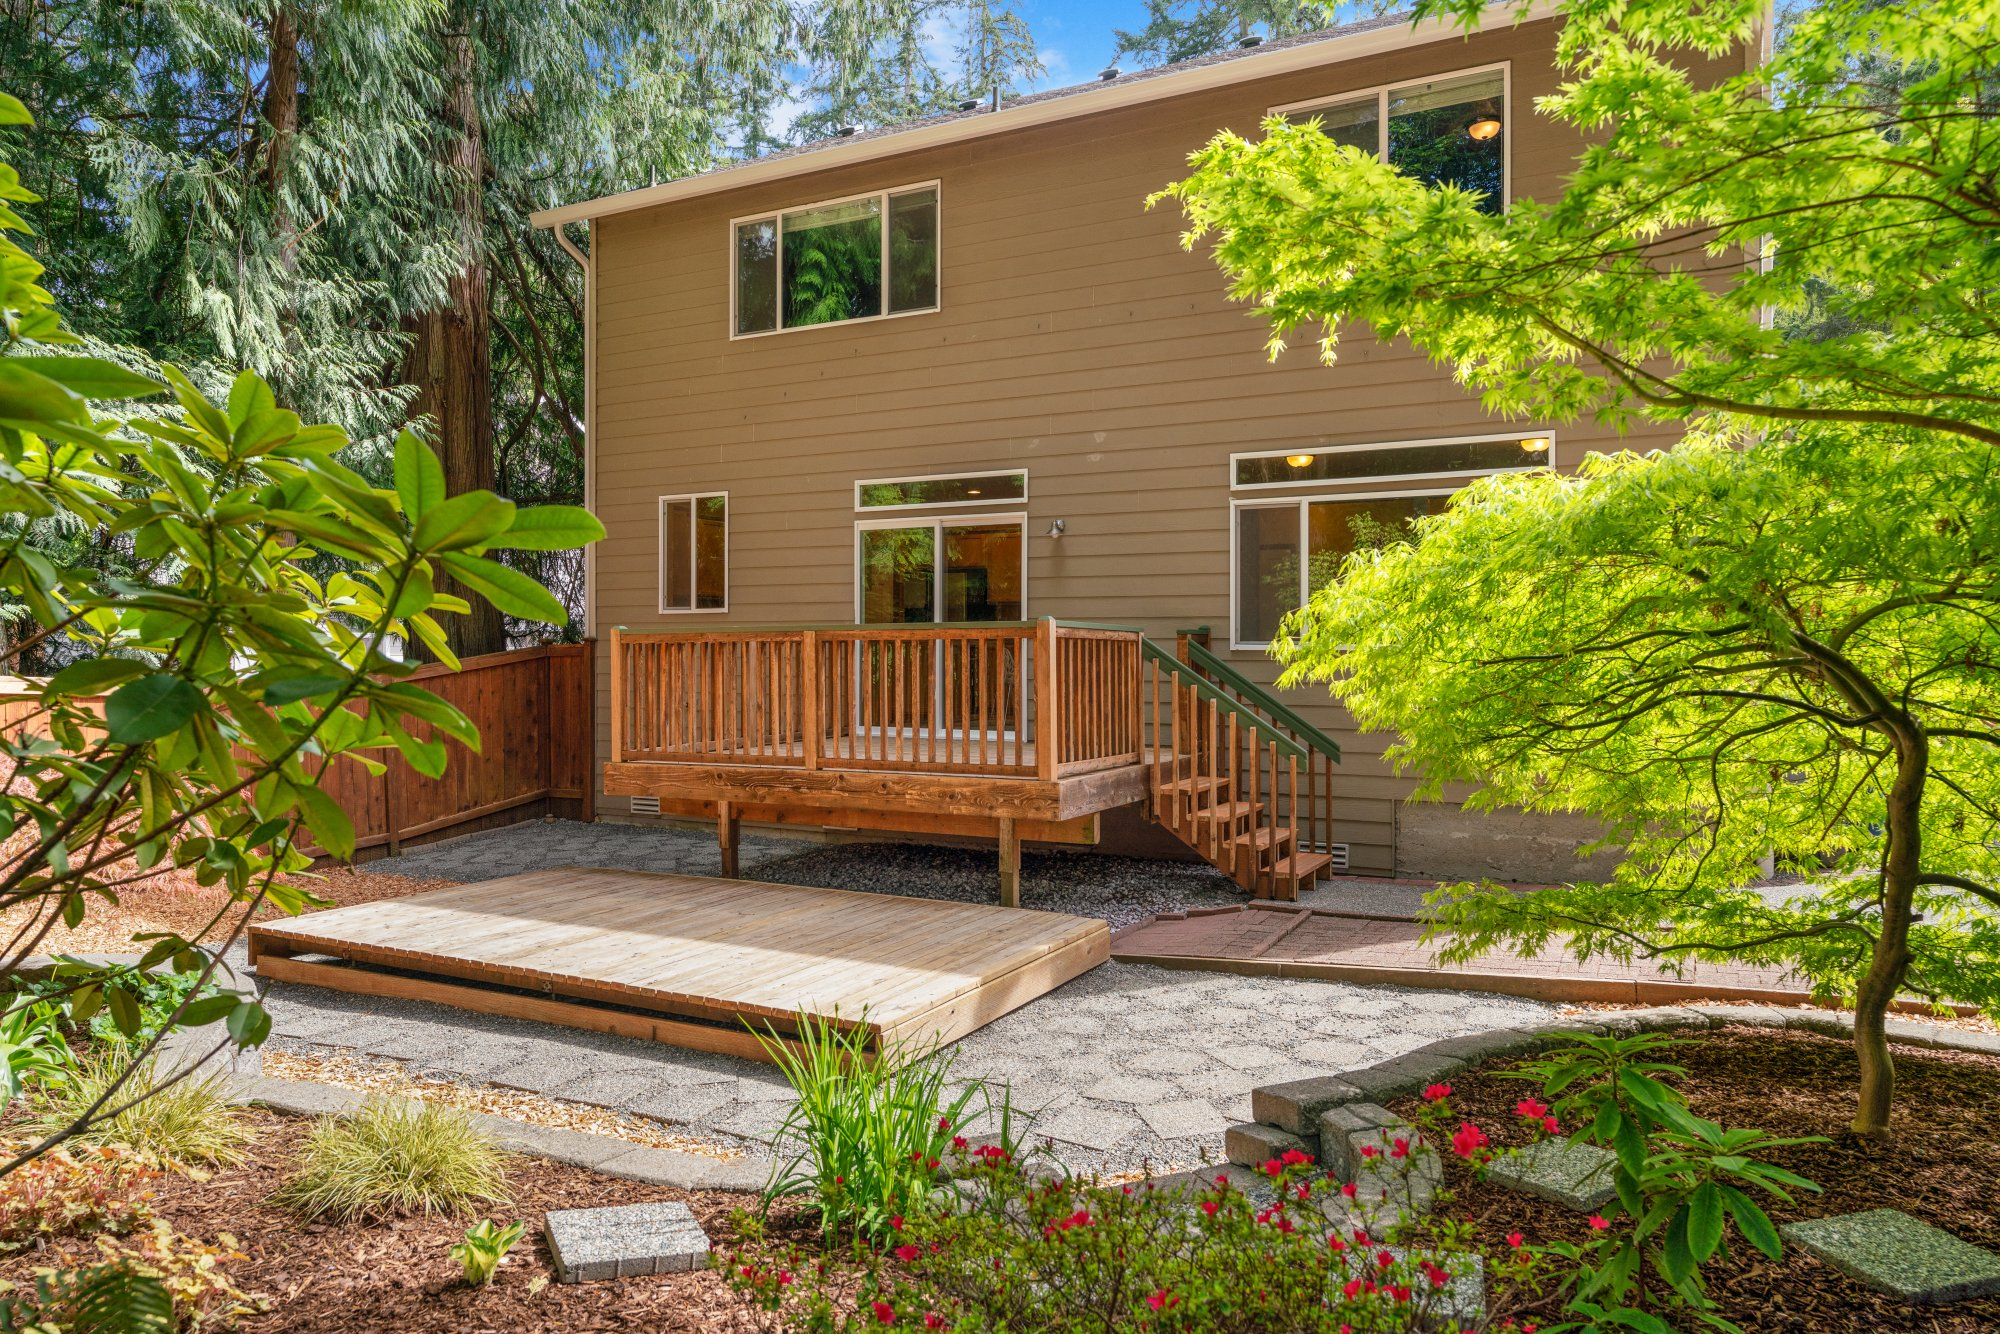 022-2946Northeast178thStreet-LakeForestPark-WA-98155-SMALL